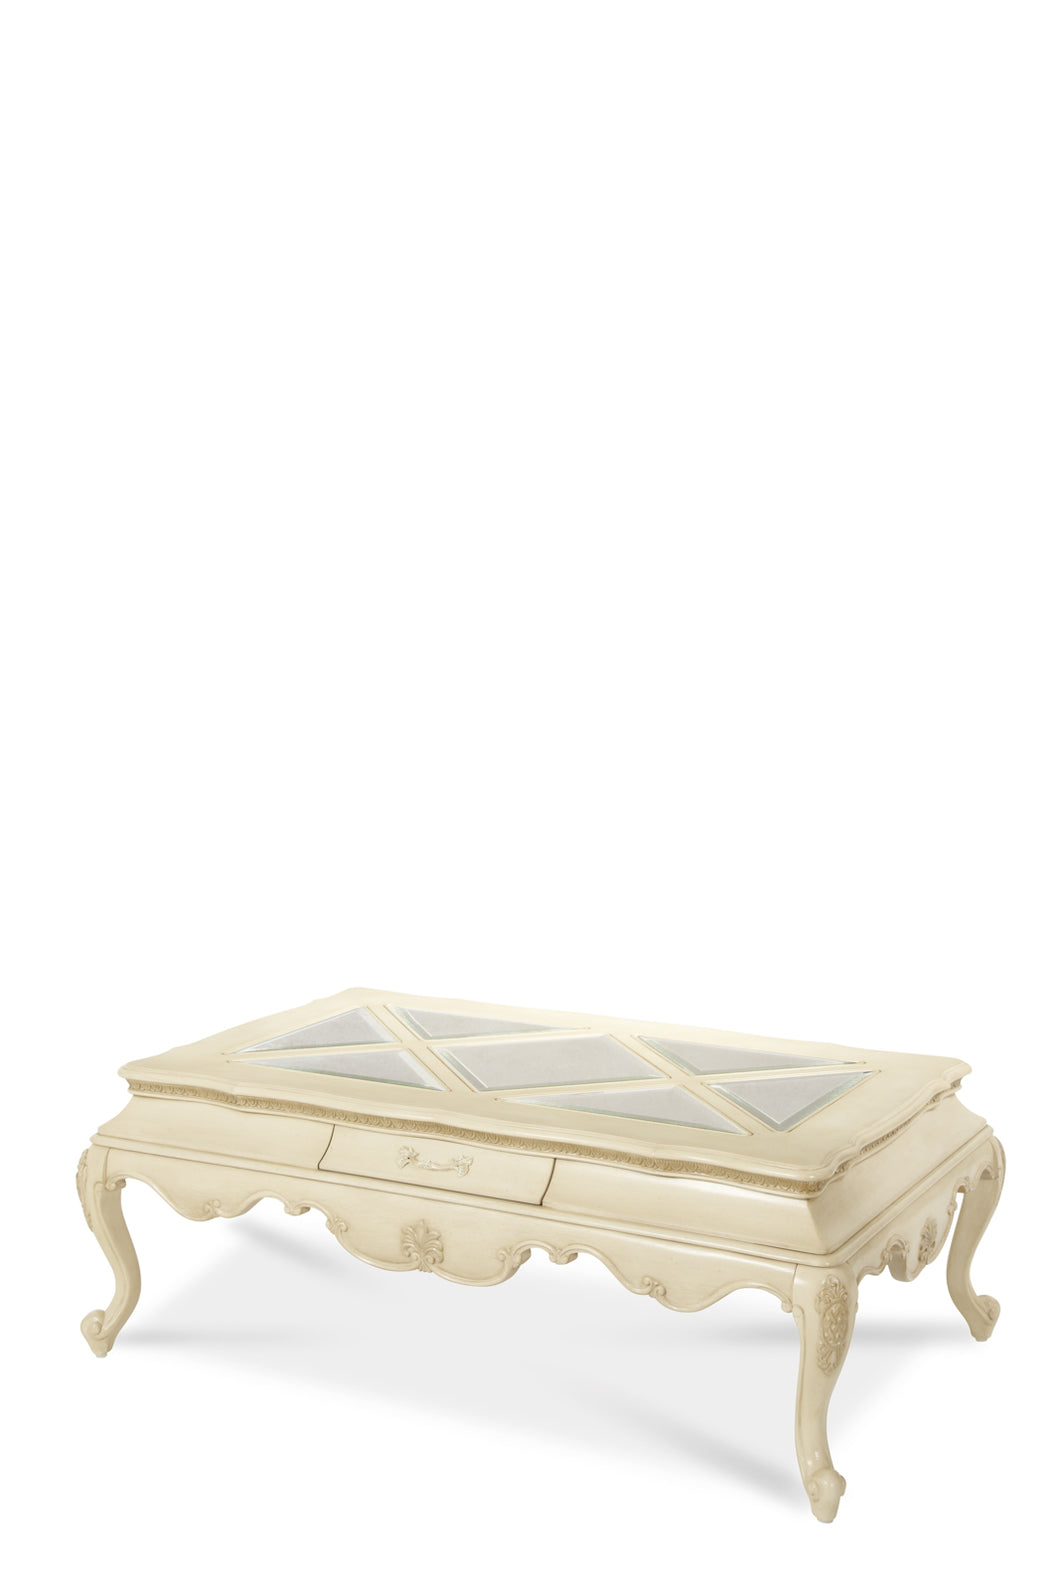 AICO Lavelle Rectangular Cocktail Table in Blanc 54201-04 image